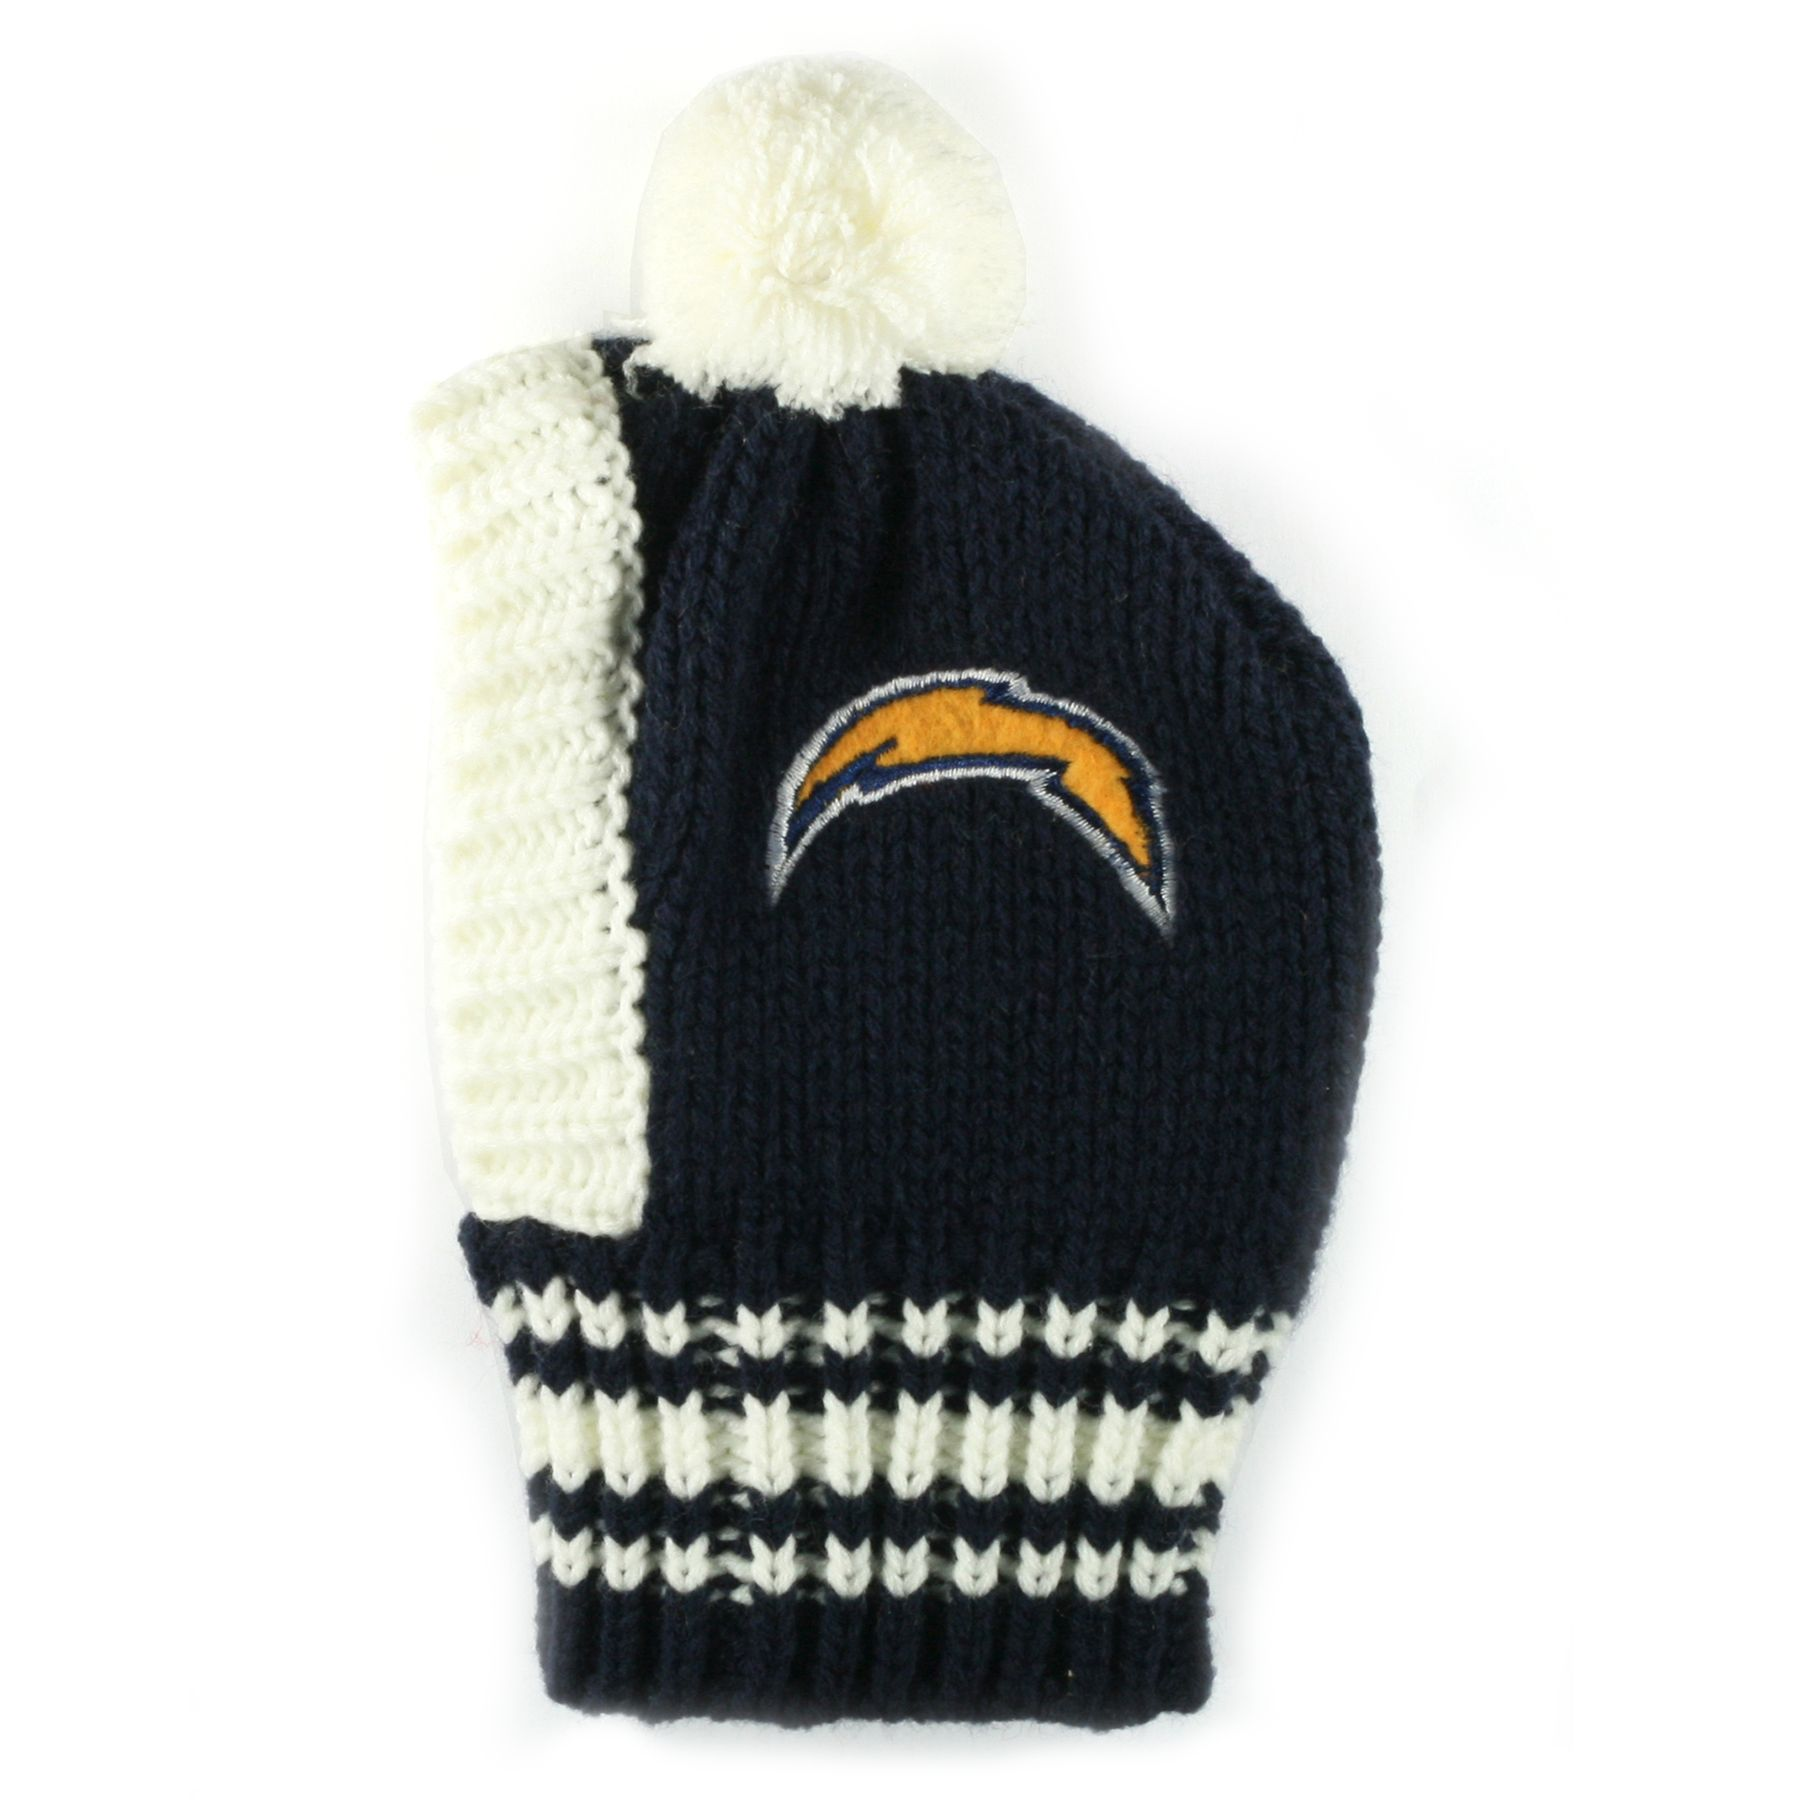 San Diego Chargers NFL Knit Hat size: Small 5244137